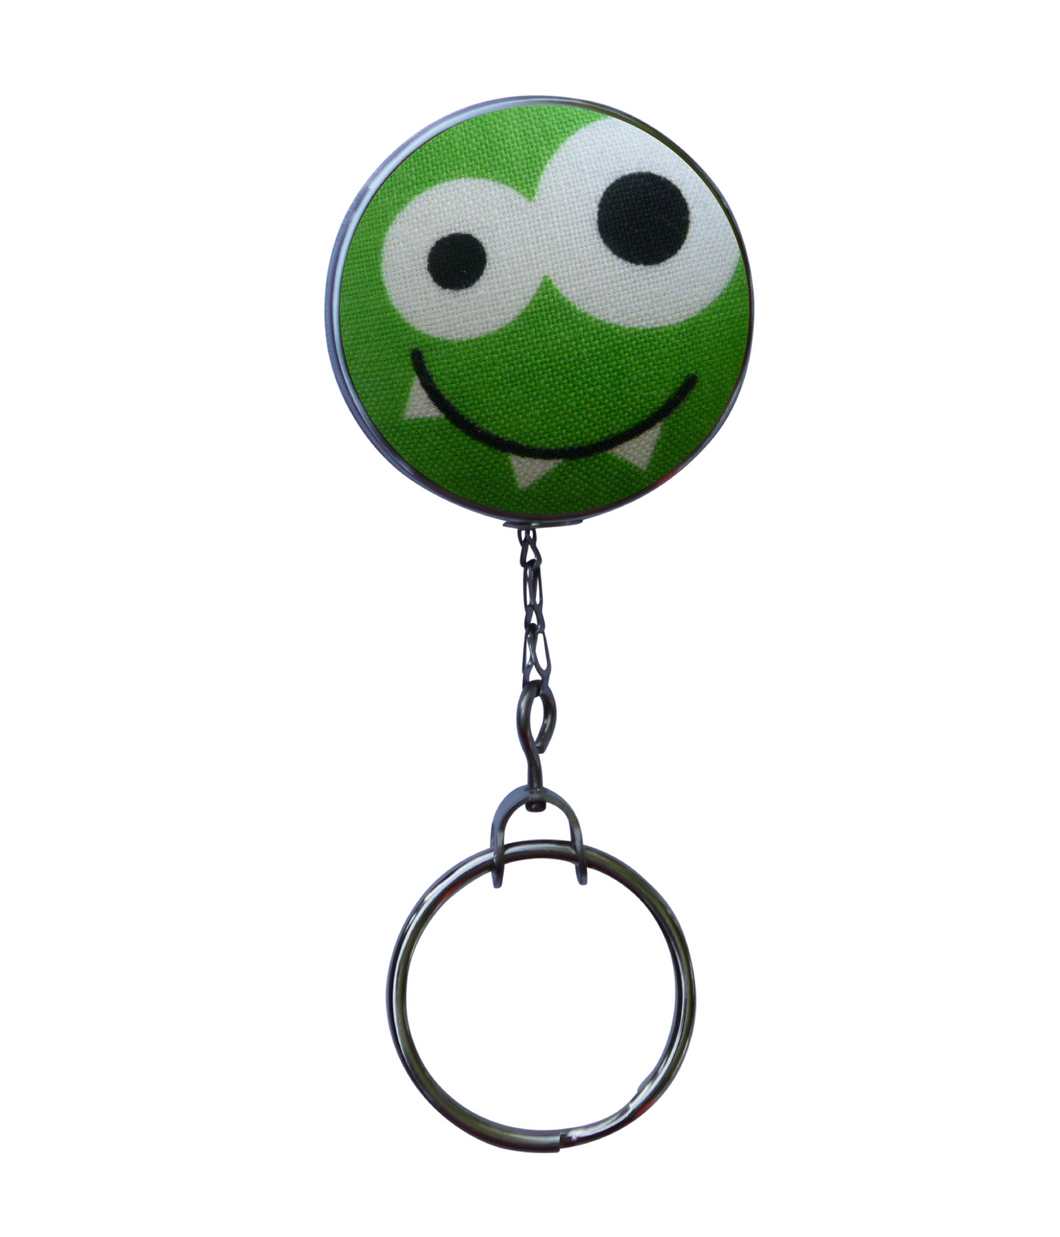 Retractable ID Badge Reel - Green Bug Eyed Monster